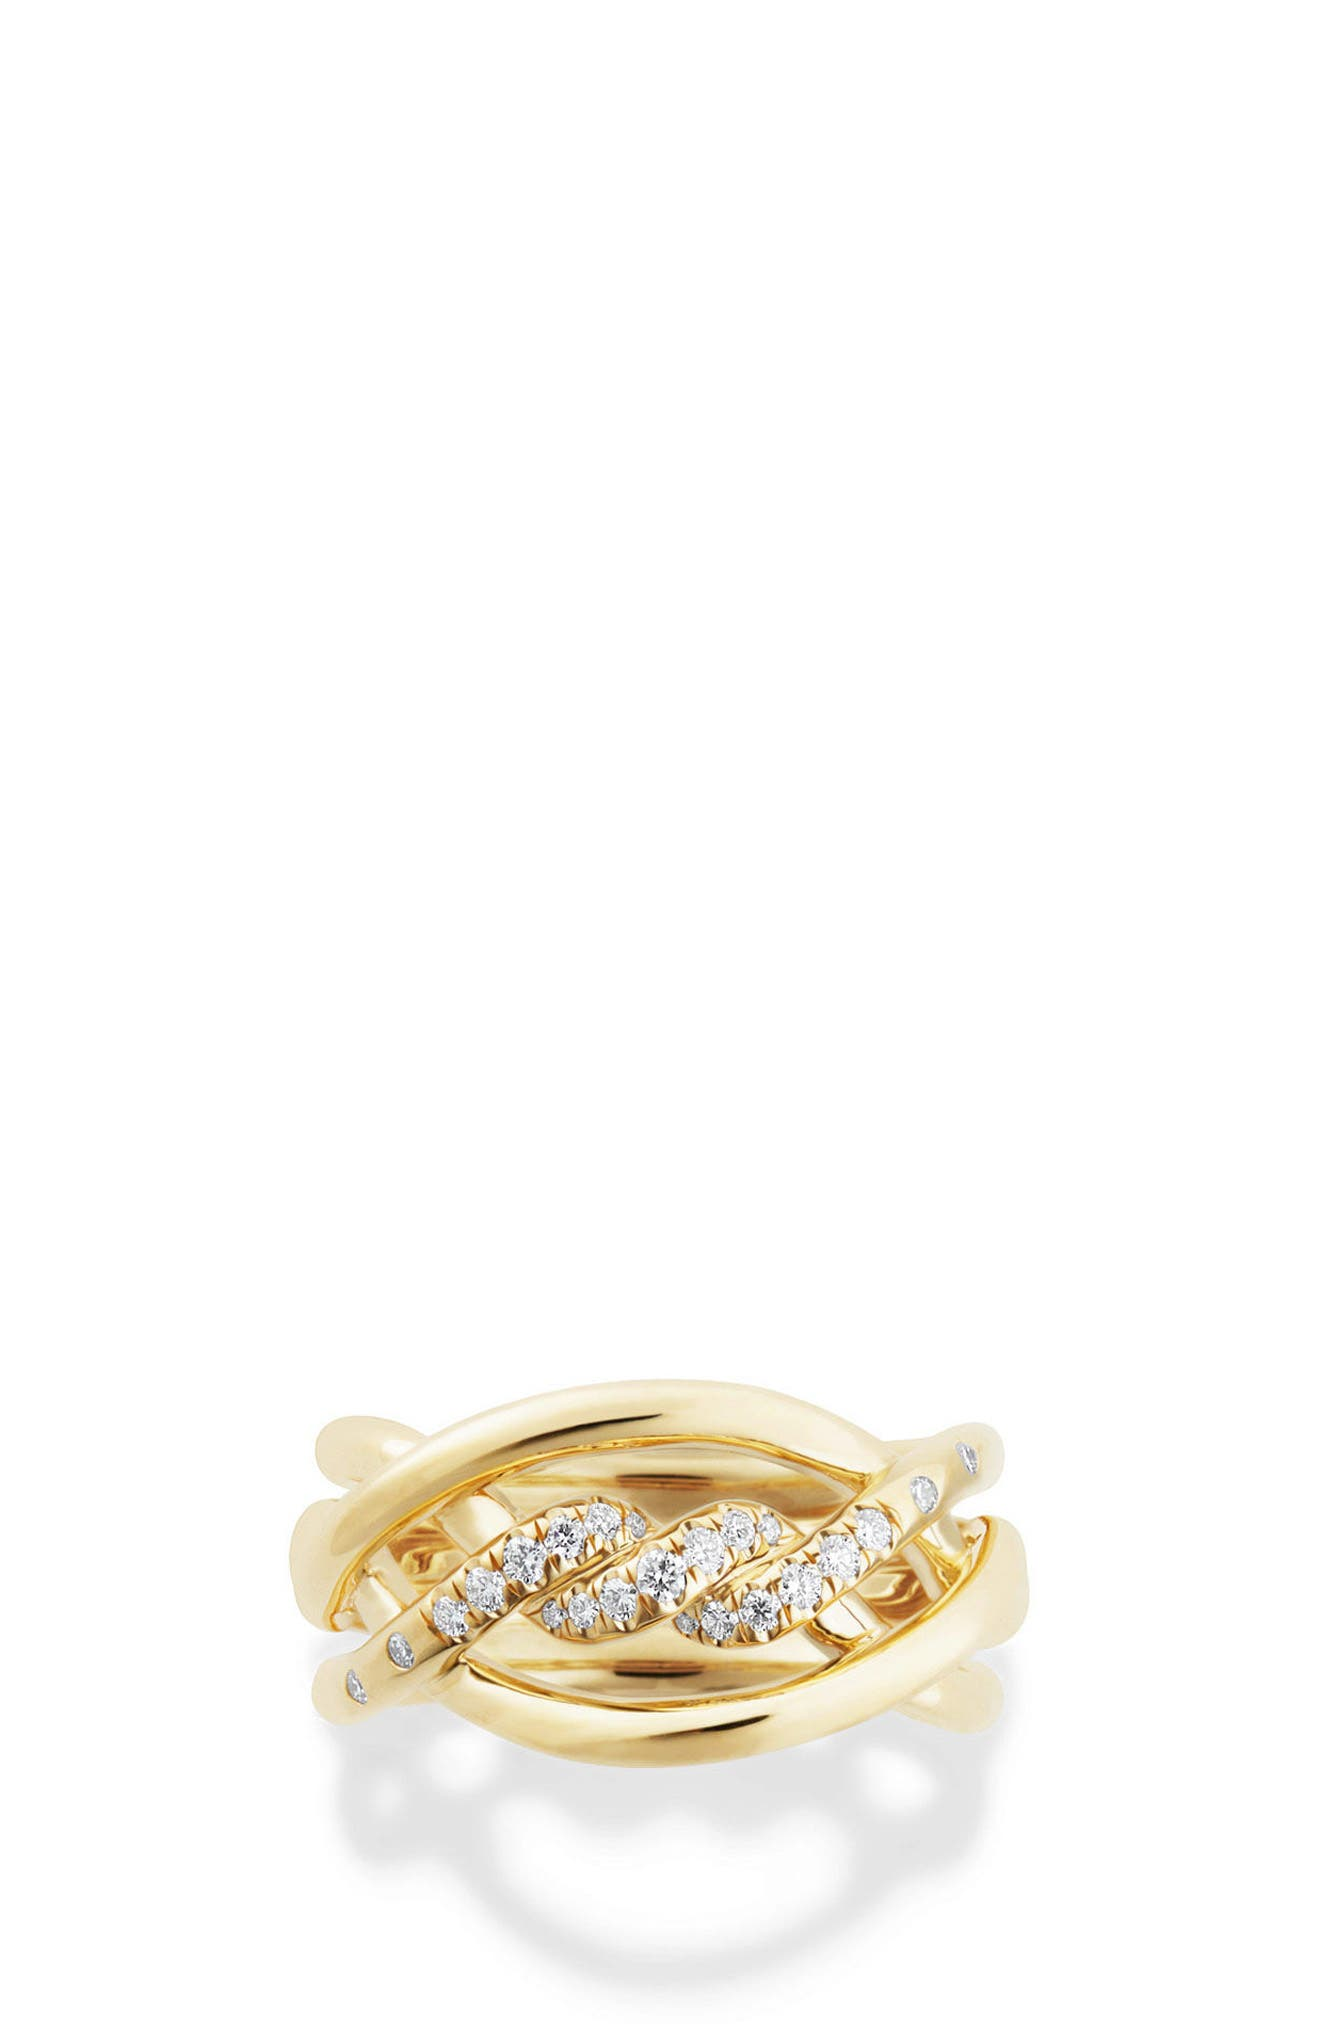 Continuance Ring with Diamonds in 18K Gold, 11.5mm,                             Alternate thumbnail 4, color,                             YELLOW GOLD